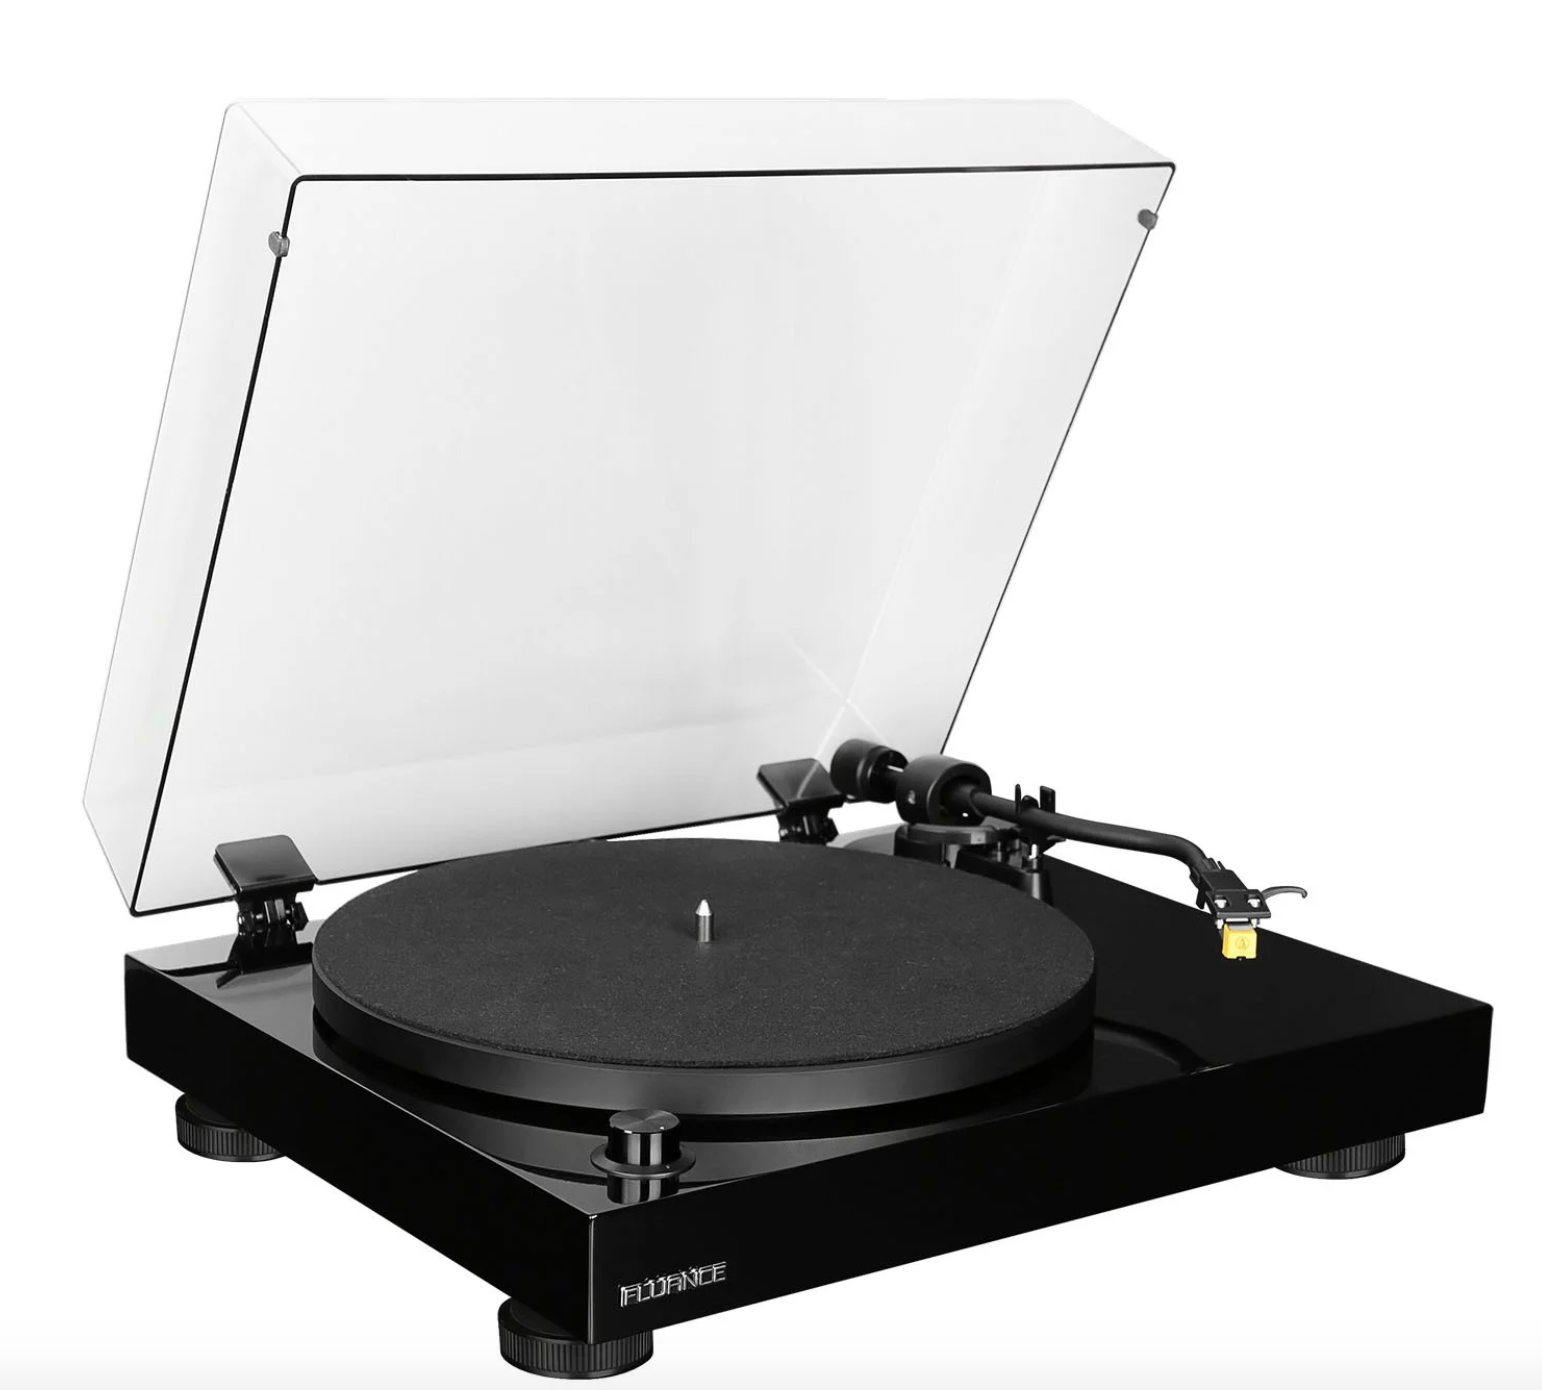 Fluance RT80 win record store day turntable high-fidelity win